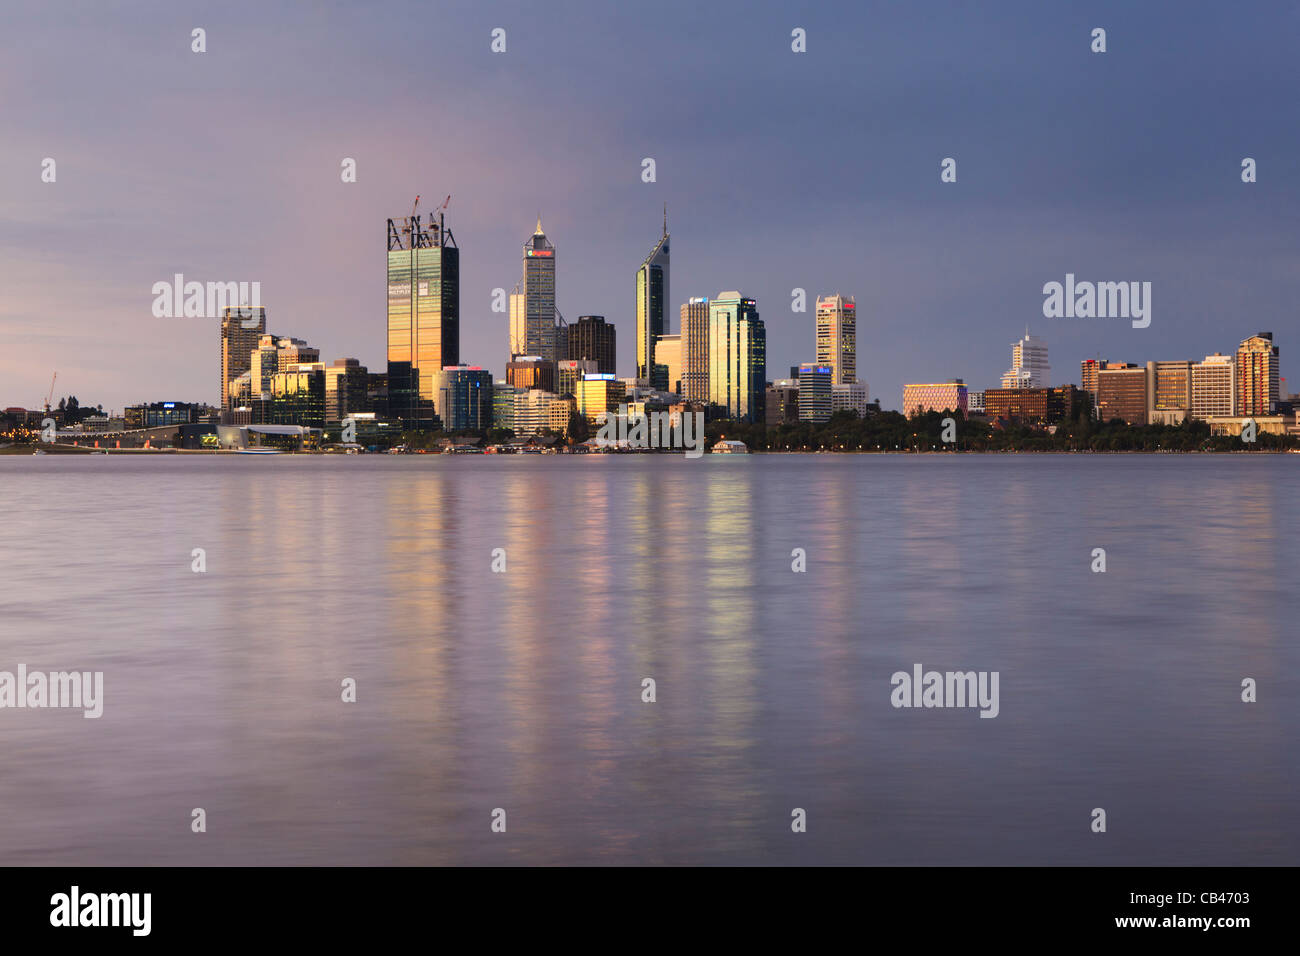 Perth cbd reflected in the Swan River at sunset. Perth, Western Australia - Stock Image